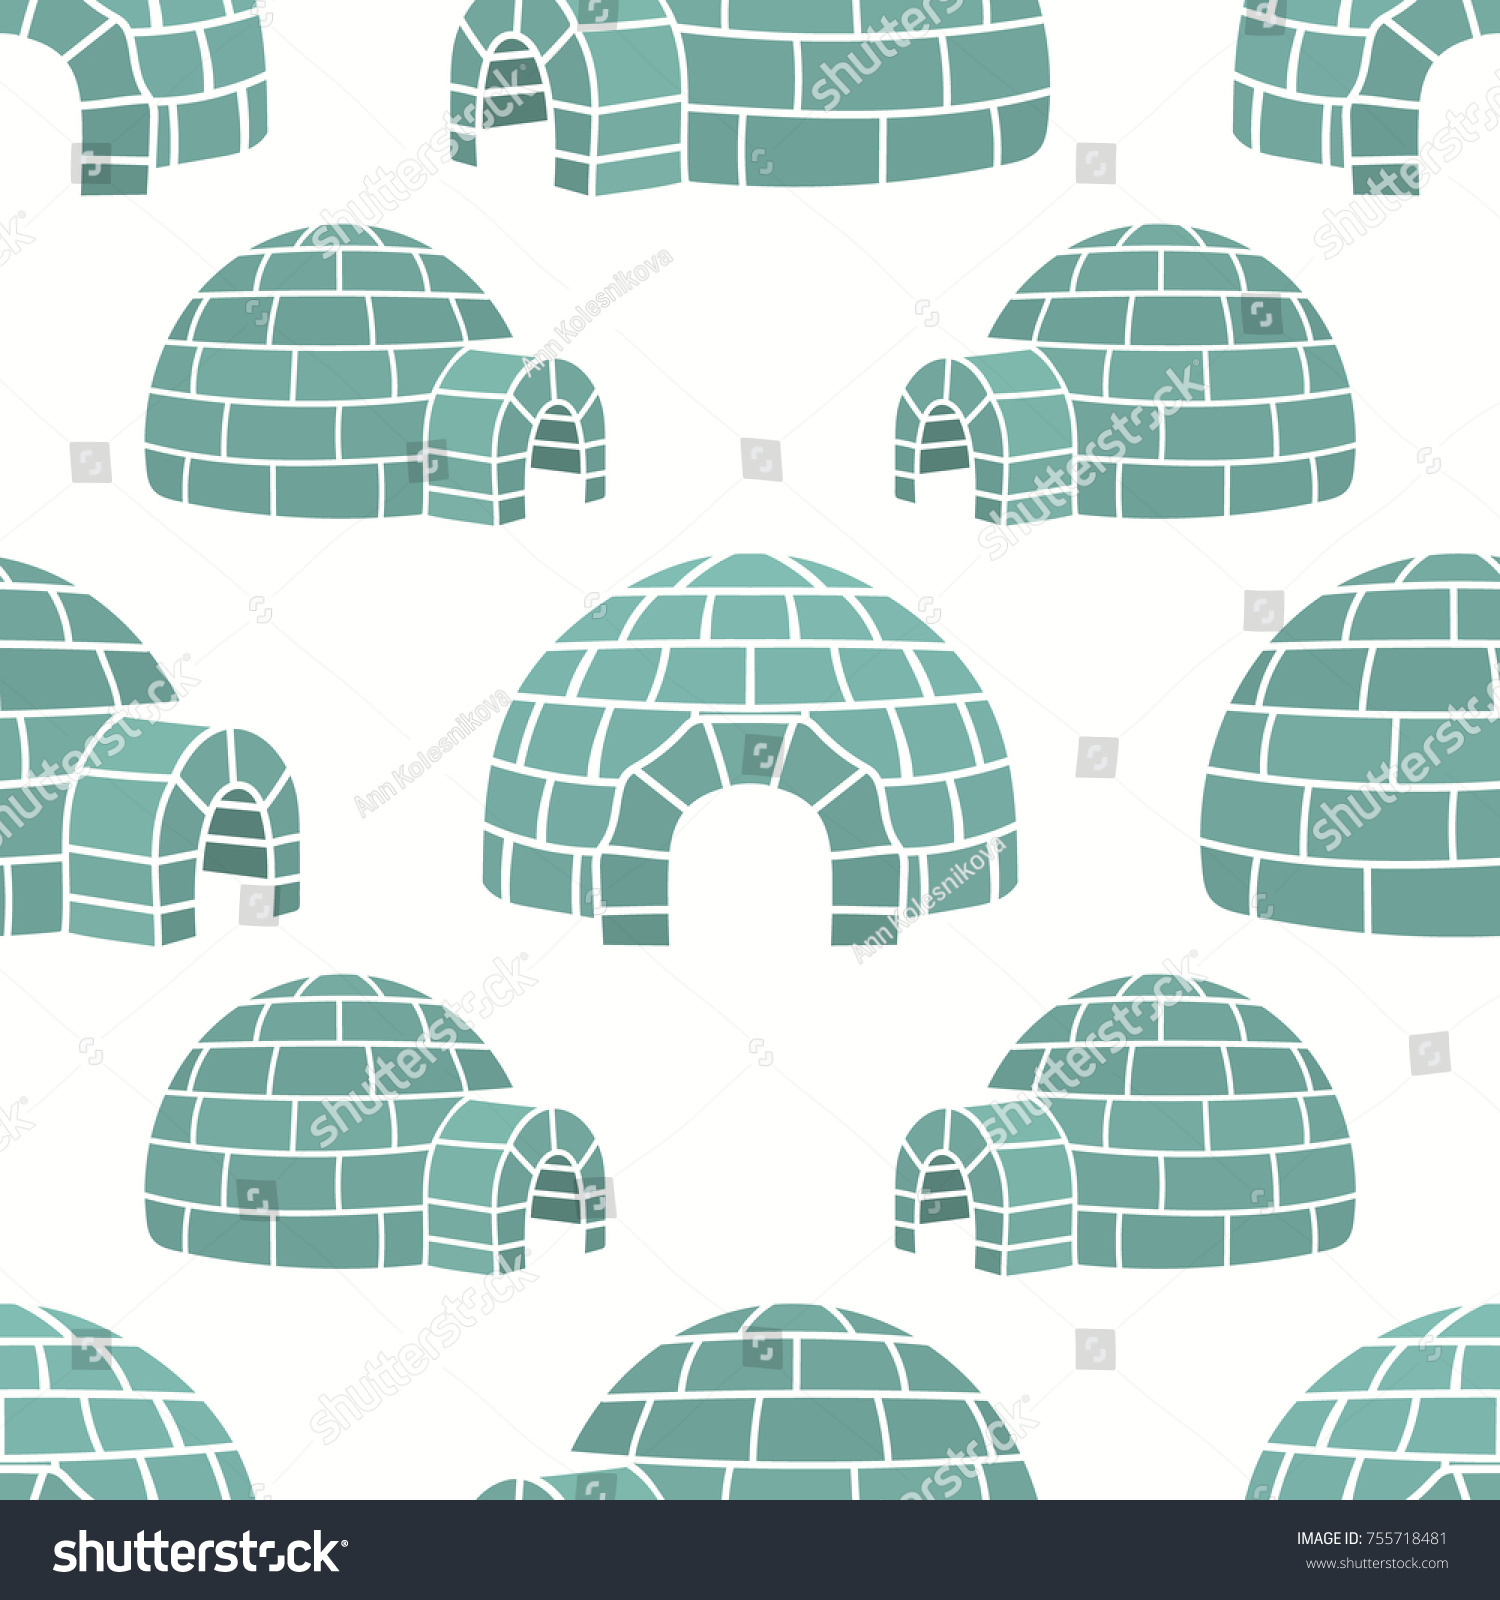 Ice house igloo vector color seamless pattern  isolated on white  House  from ice blocks. Ice House Igloo Vector Color Seamless Stock Vector 755718481